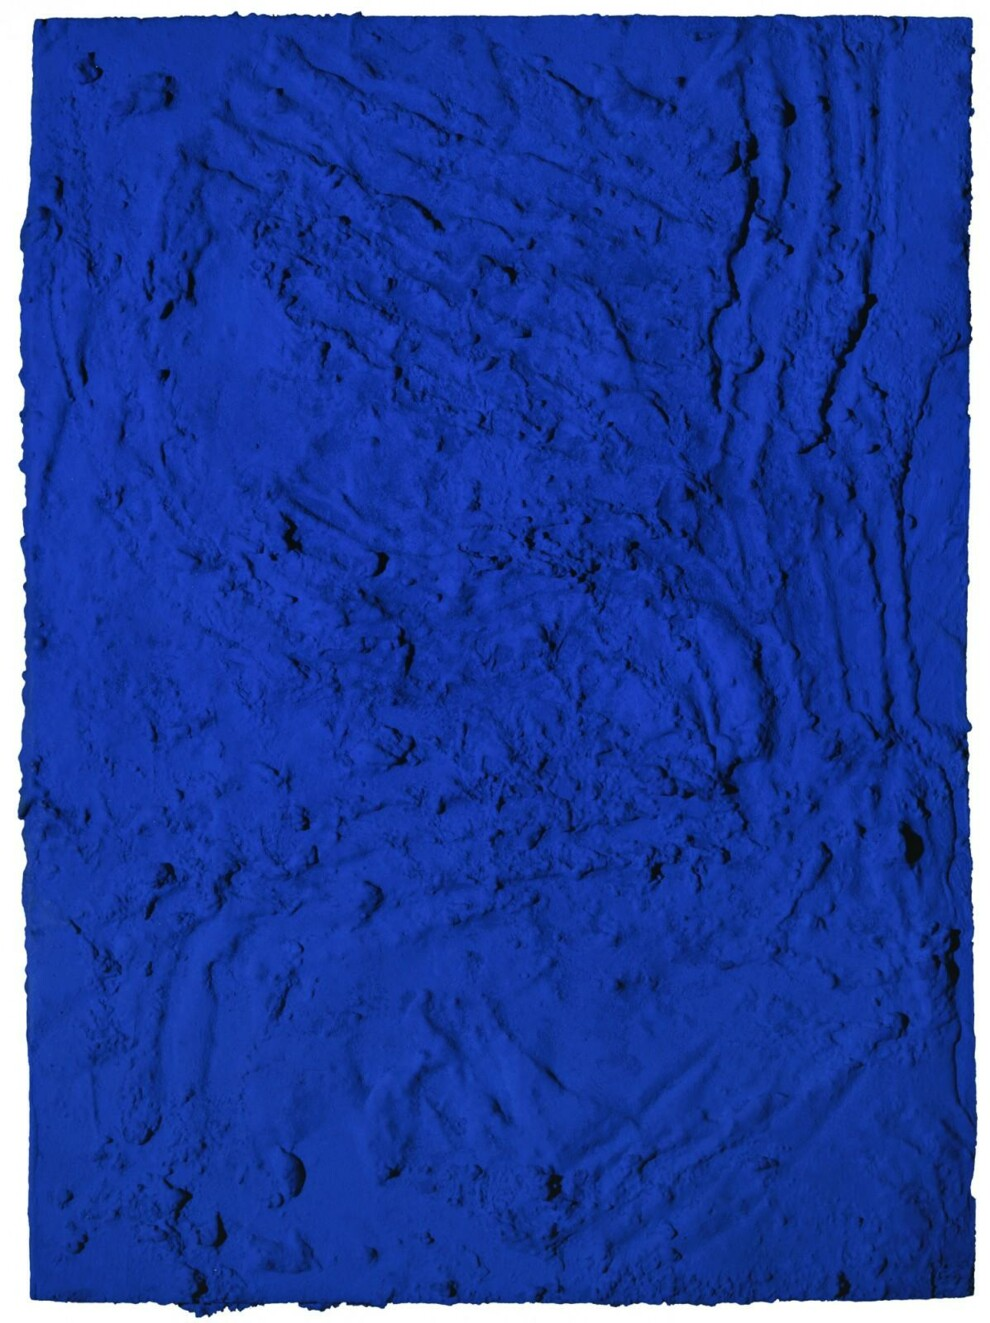 Ив Кляйн, Untitled Planetary Relief (RP 8), 1961 @Yves Klein Archives